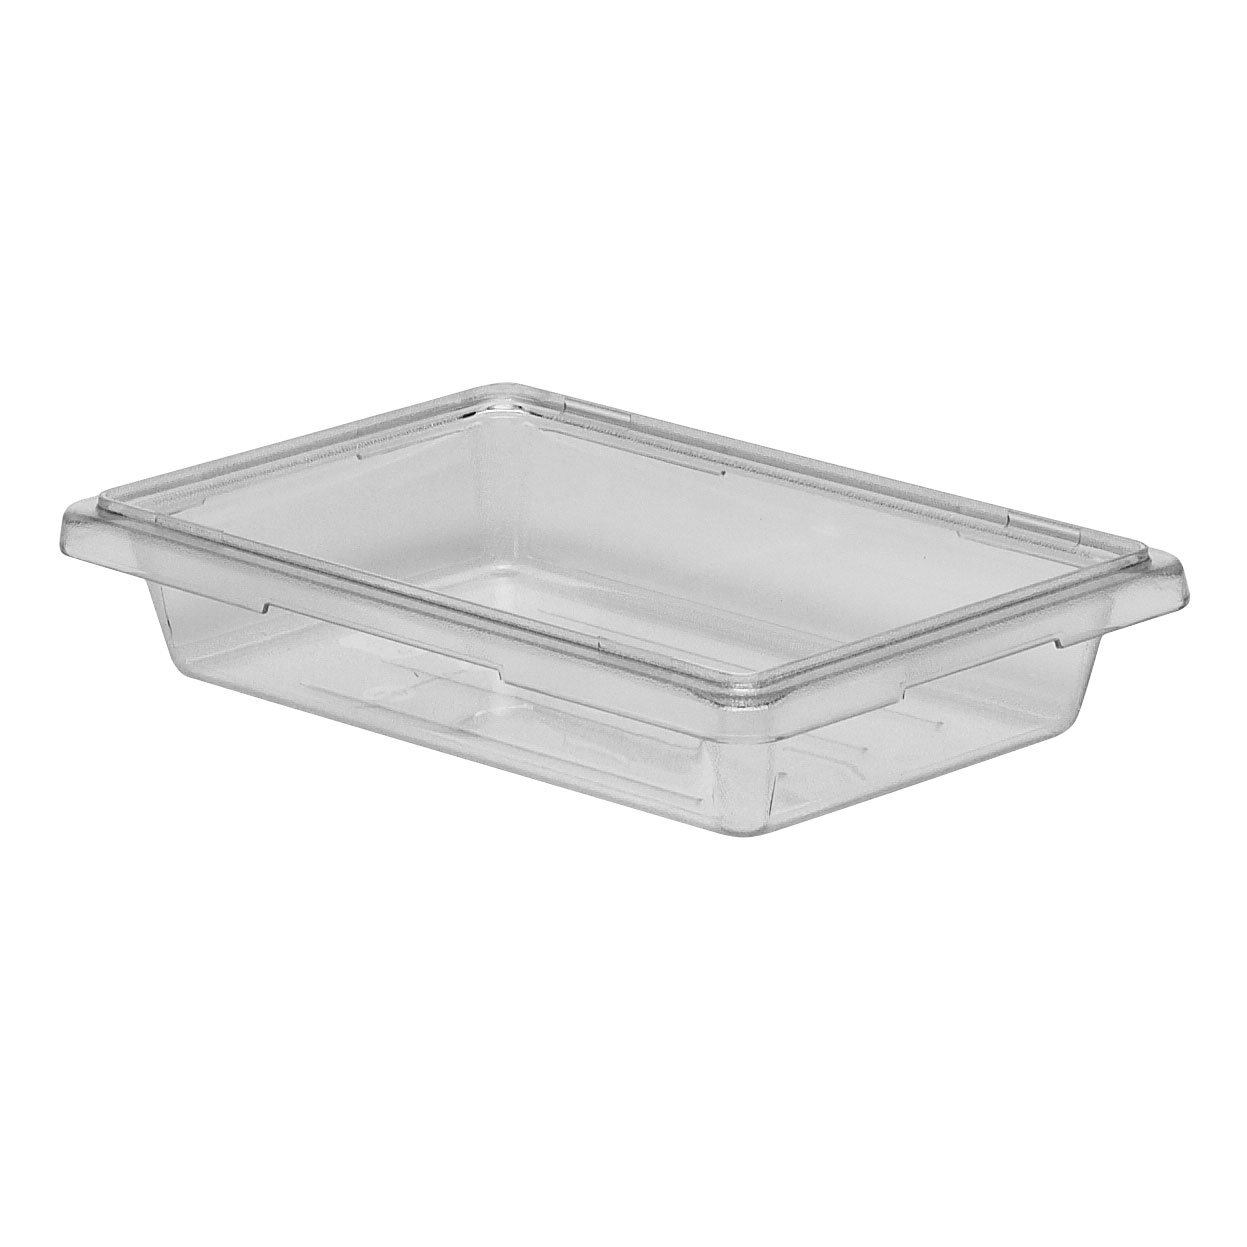 Cambro 12183CW135 food storage container, box